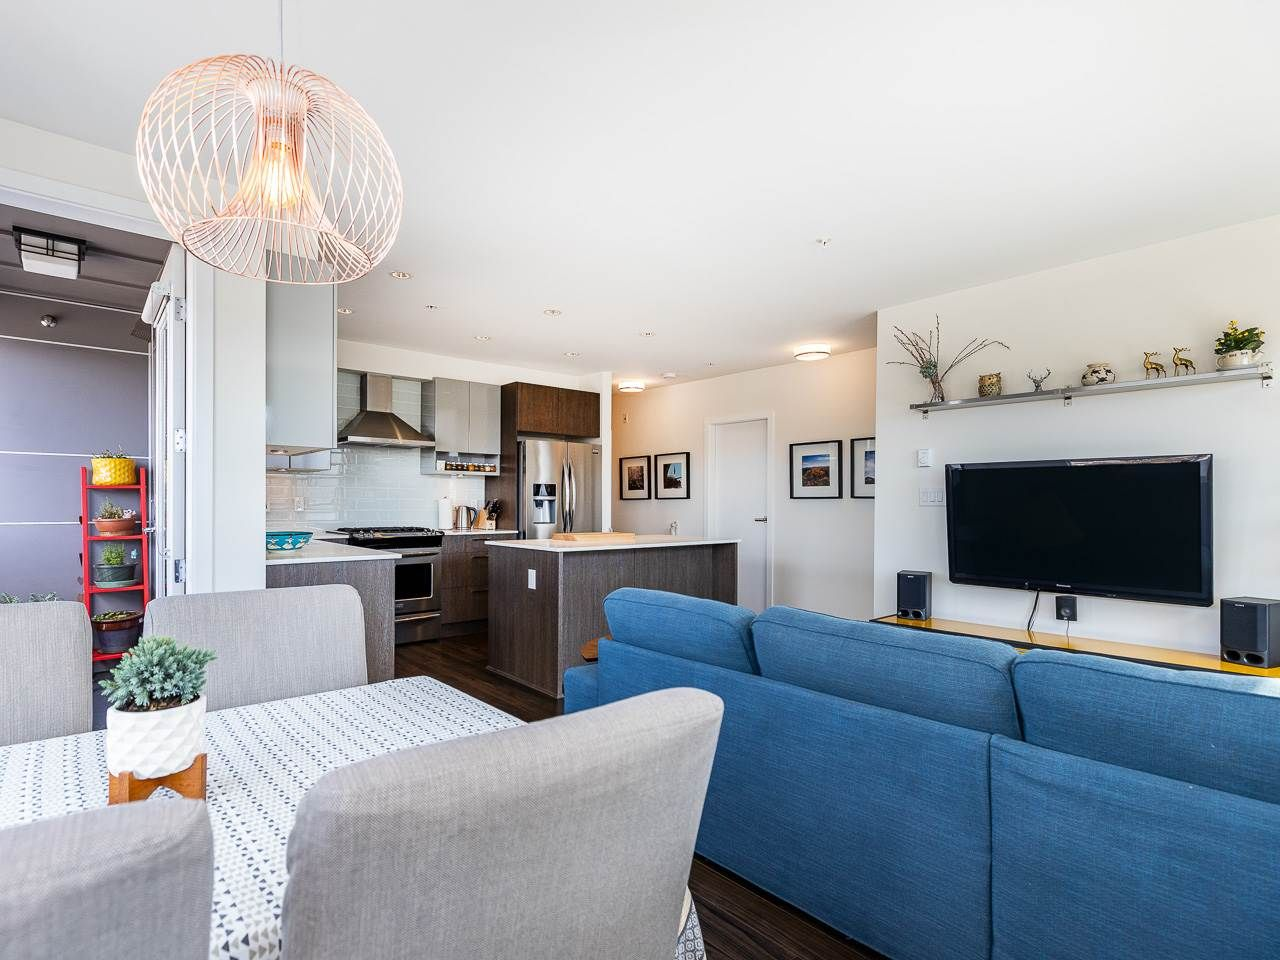 Photo 3: Photos: 306 202 E 24TH AVENUE in Vancouver: Main Condo for sale (Vancouver East)  : MLS®# R2406713